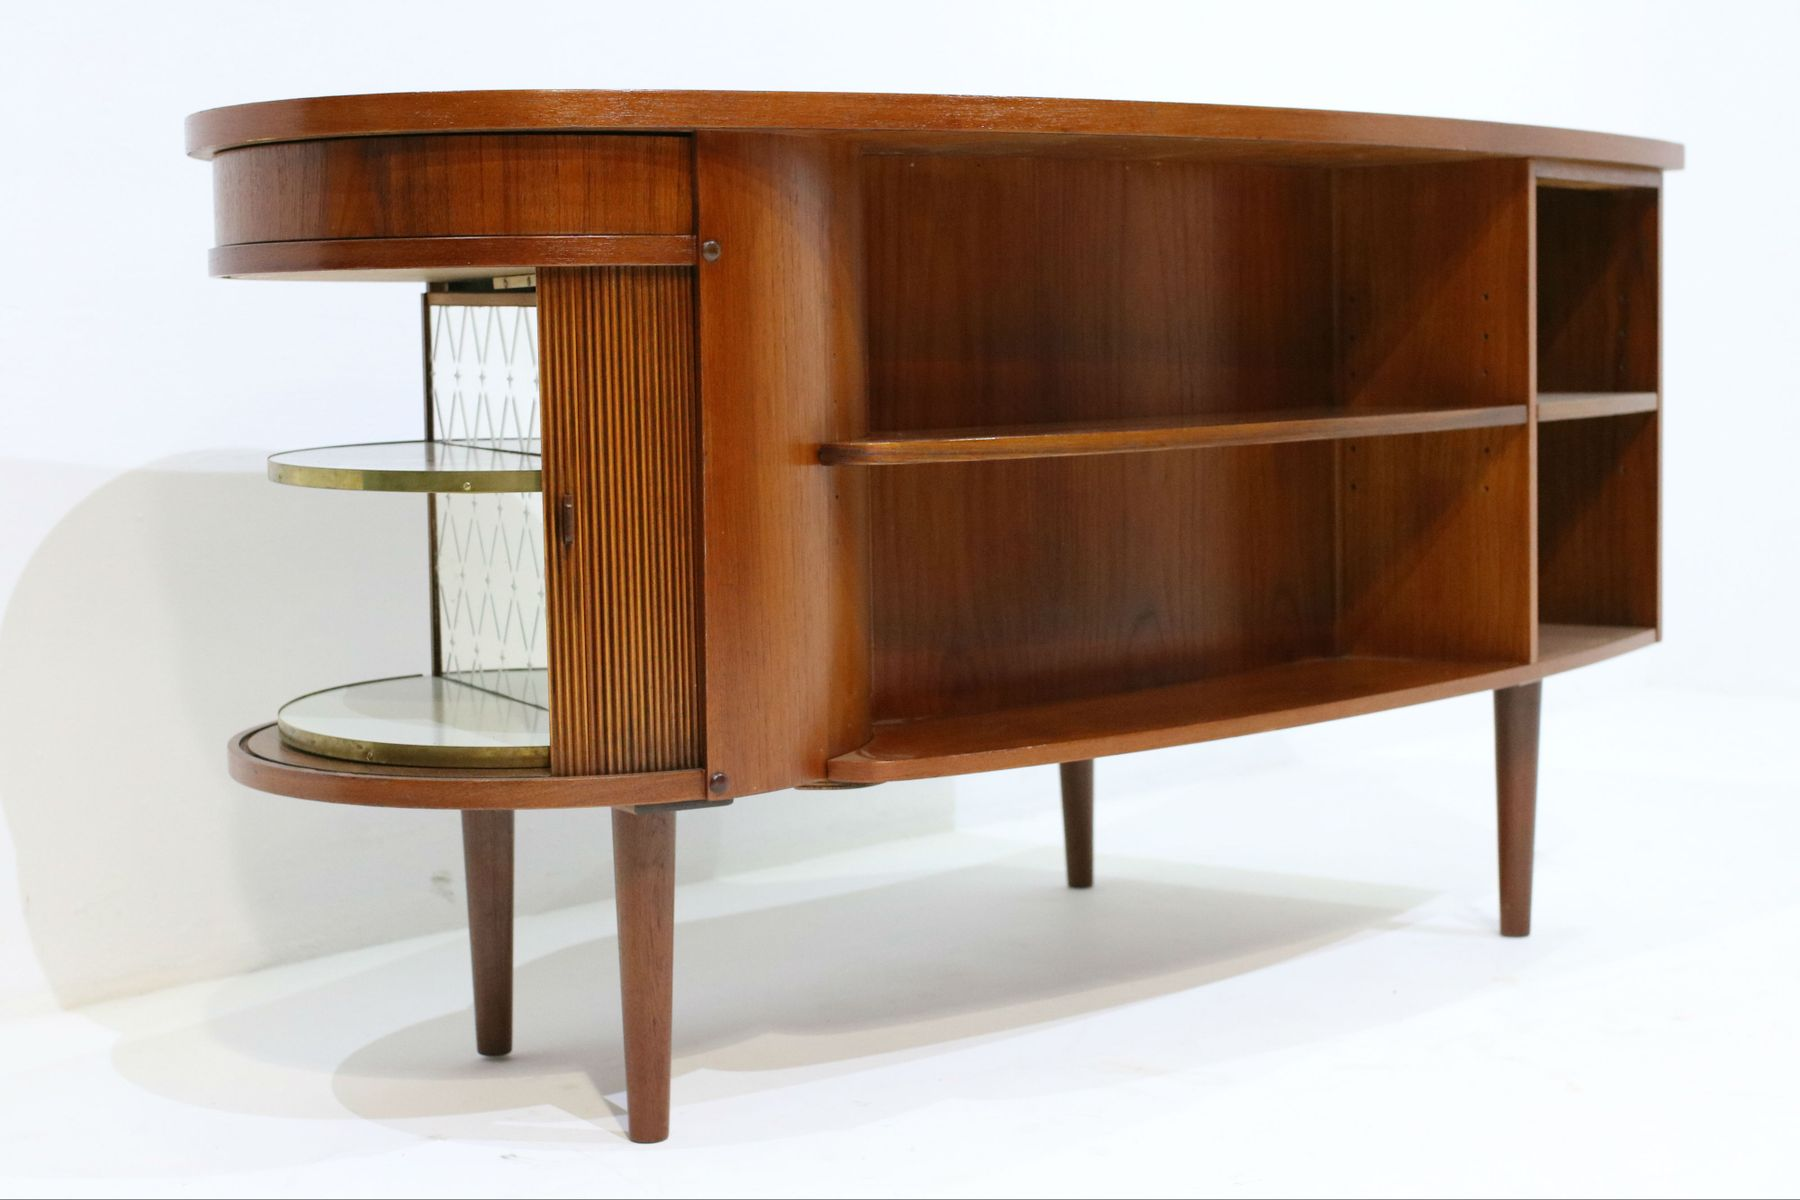 Teak kidney desk by kai kristiansen for feldballes for Kidney desk for sale